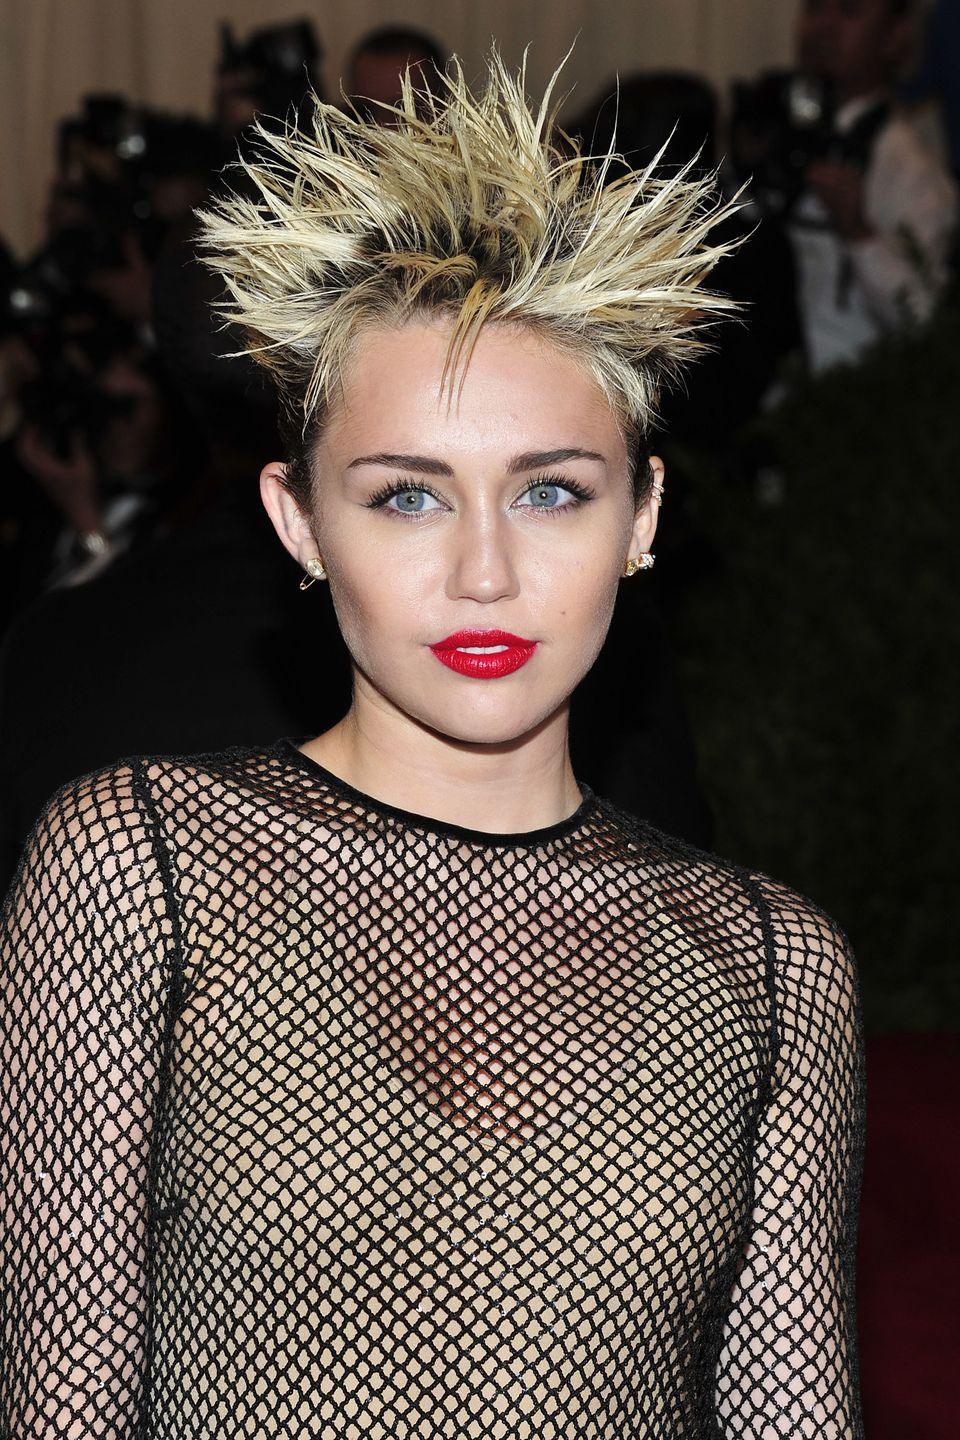 red-carpet-met-gala-2013-miley-cyrus-beauty-look